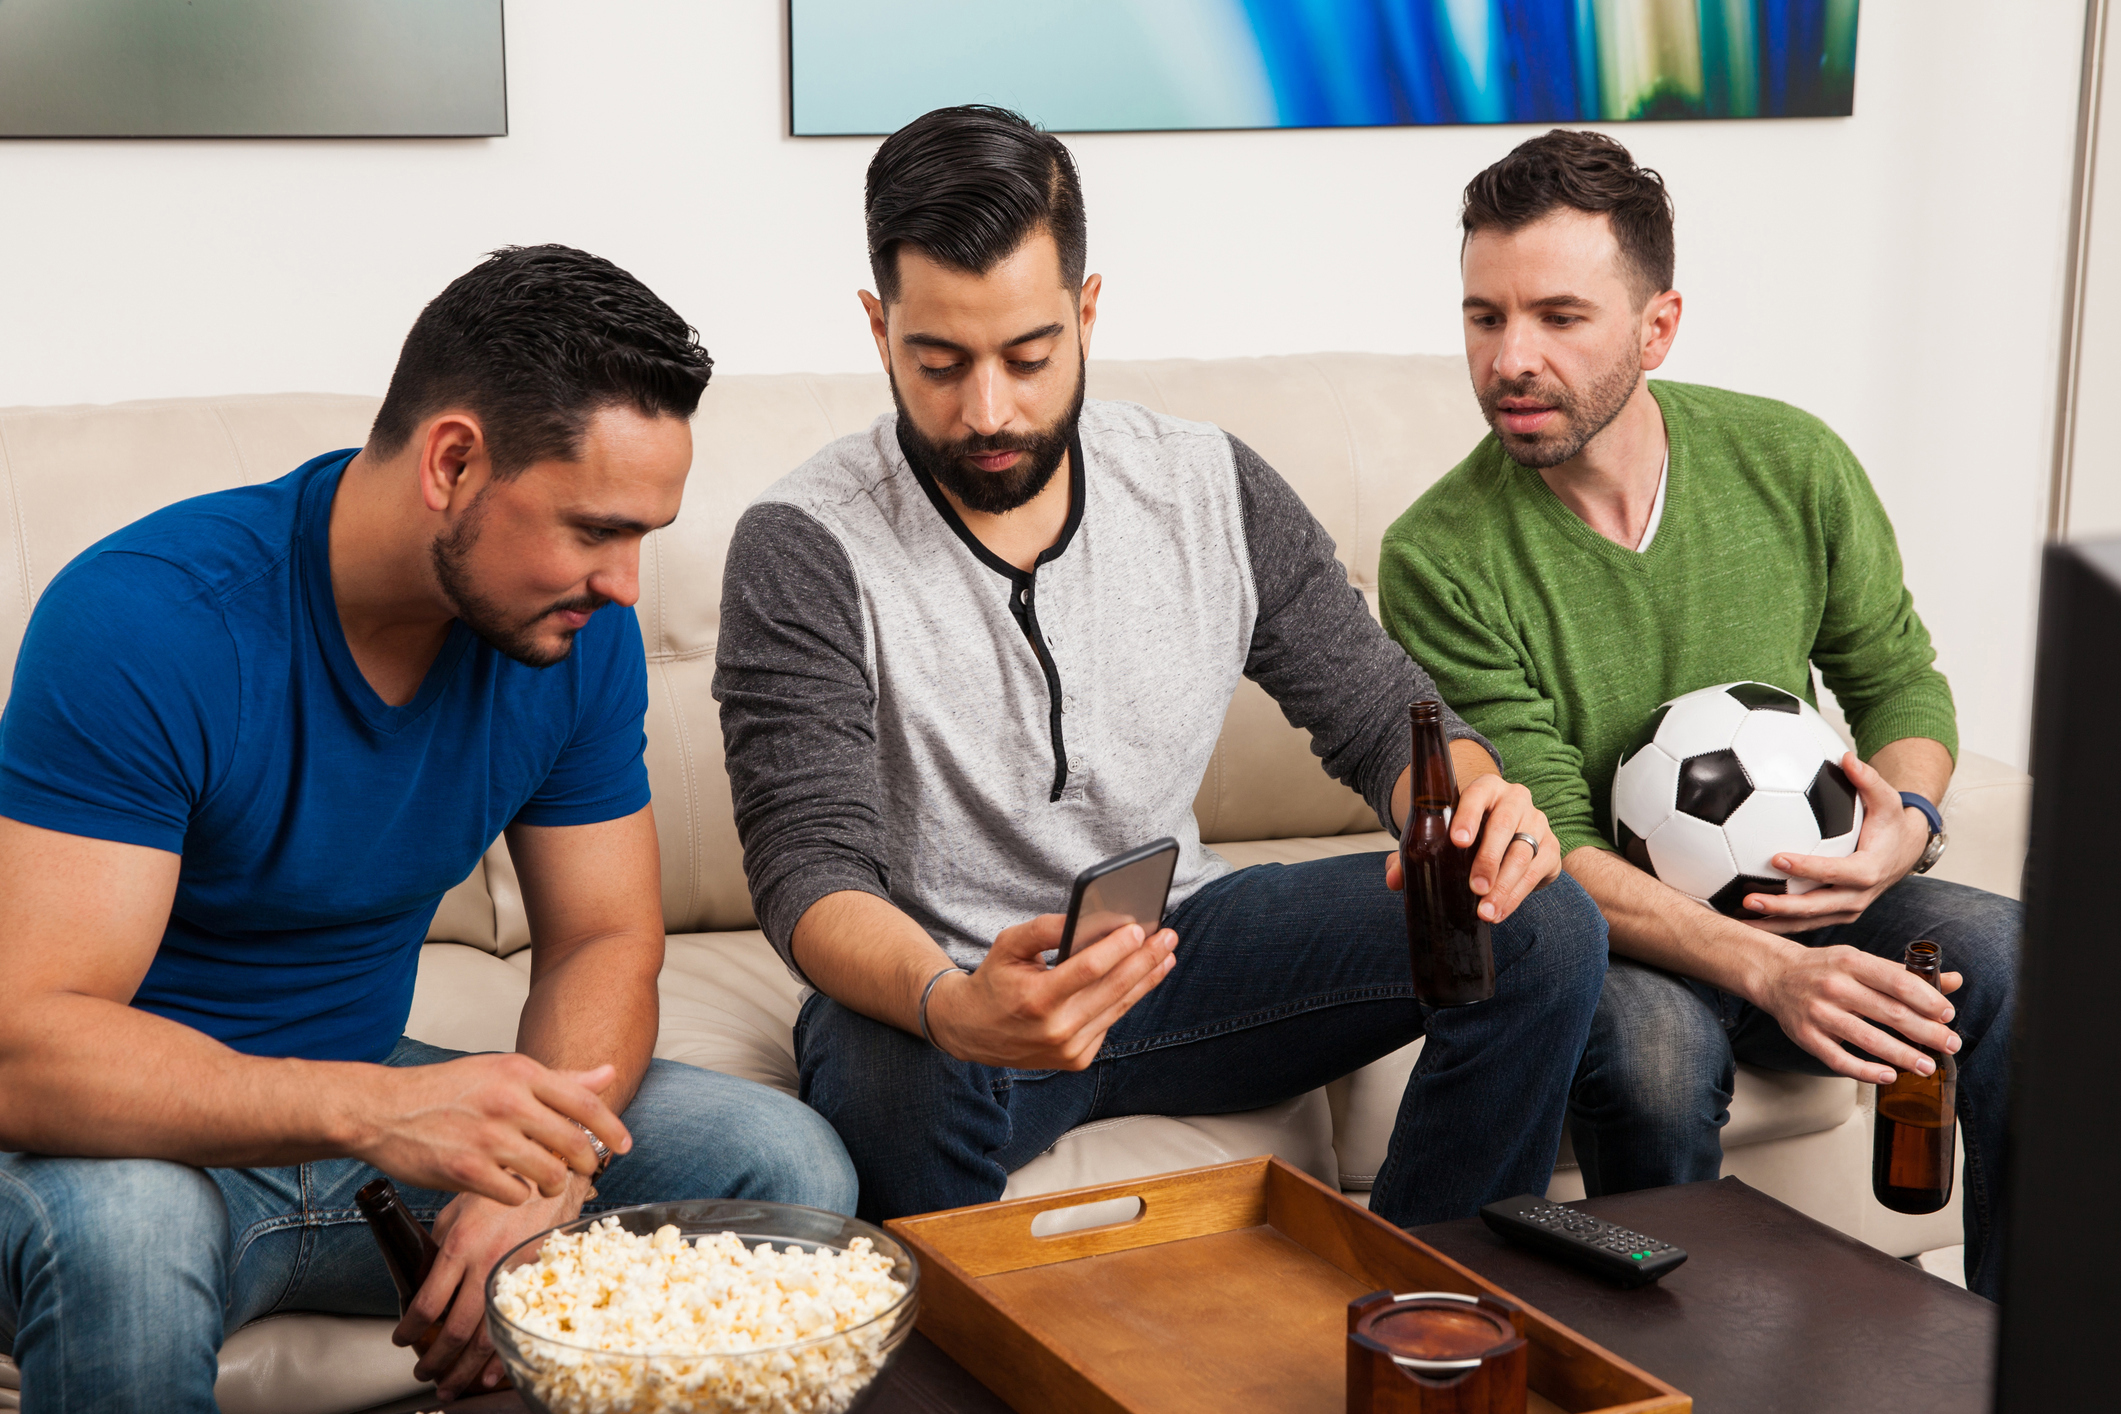 Group of friends checking their team stats on a smartphone while watching a soccer game on TV. (Antonio_Diaz/Getty Images)